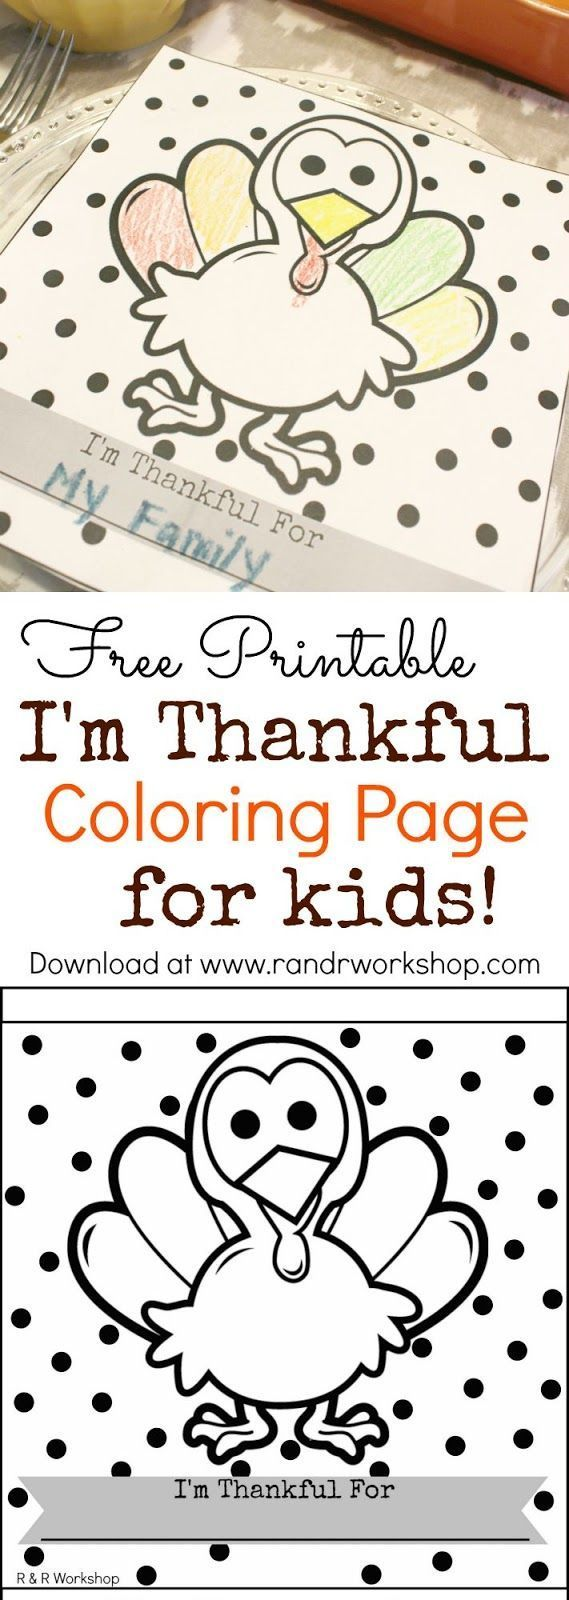 3268 best images about Sunday school ideas on Pinterest